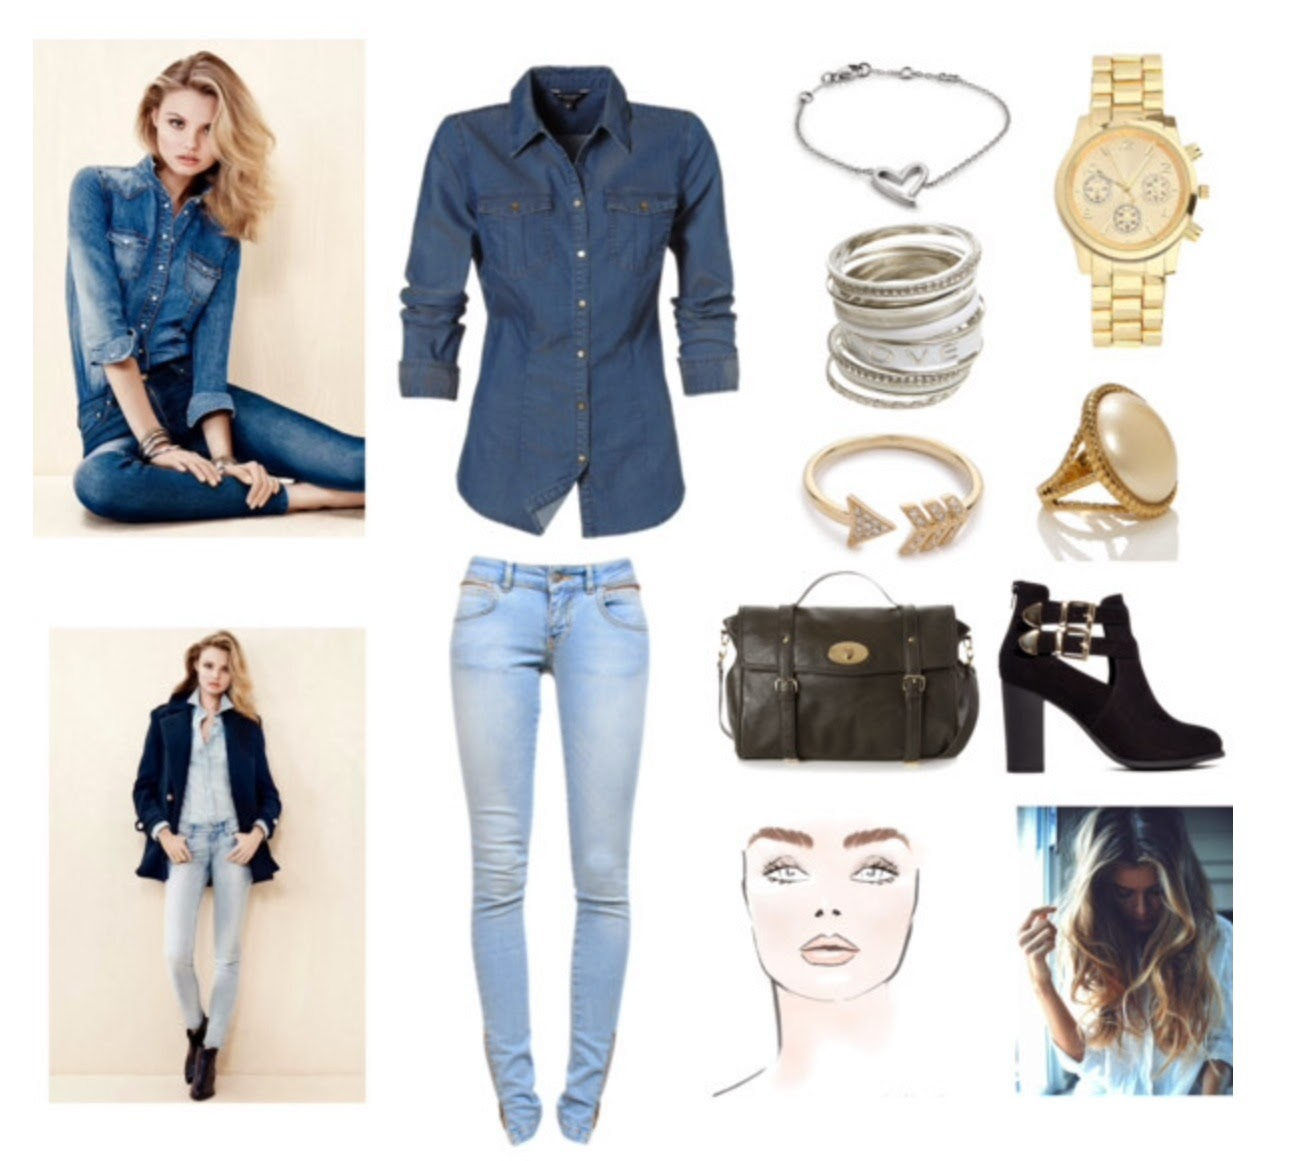 Lrsmth-Fashion An afternoon spent on Polyvore